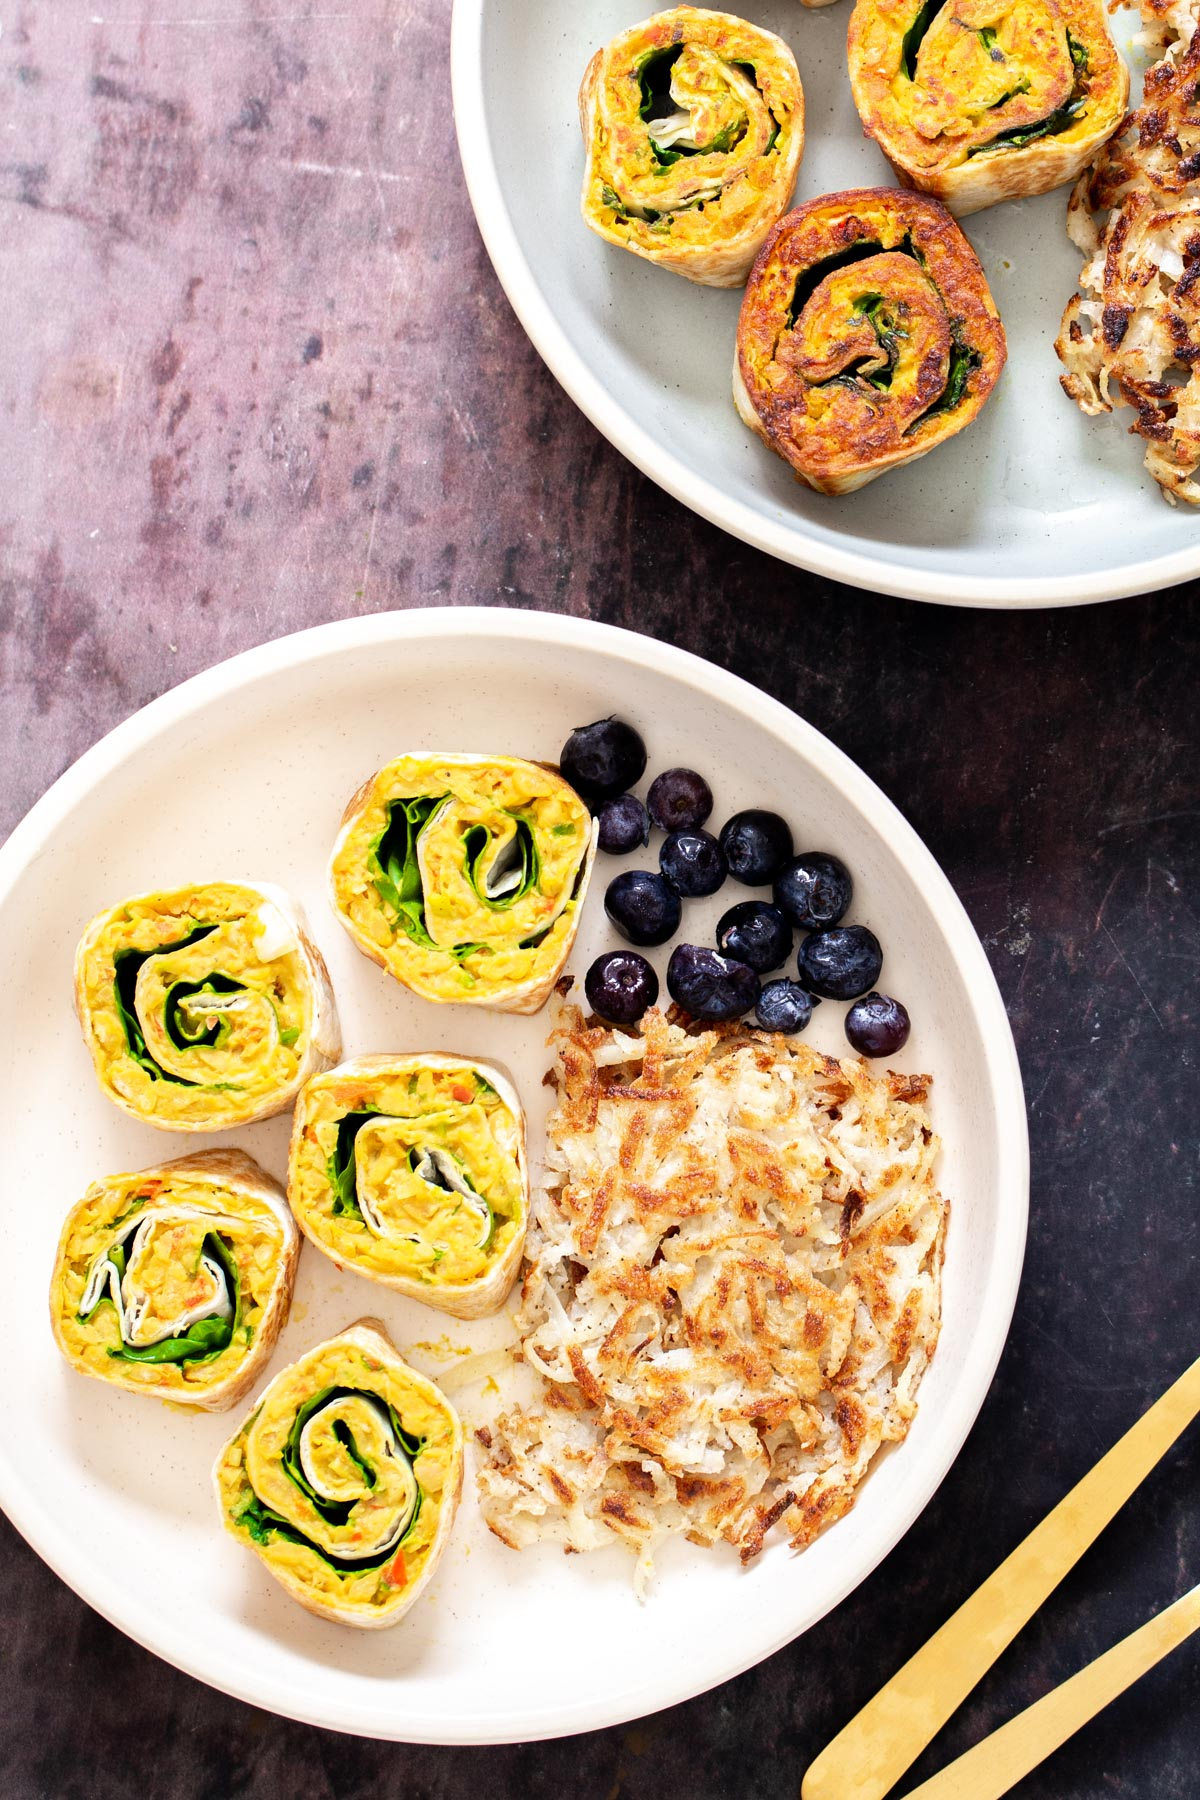 vegan chickpea scramble pinwheels served with blueberries and hashbrowns